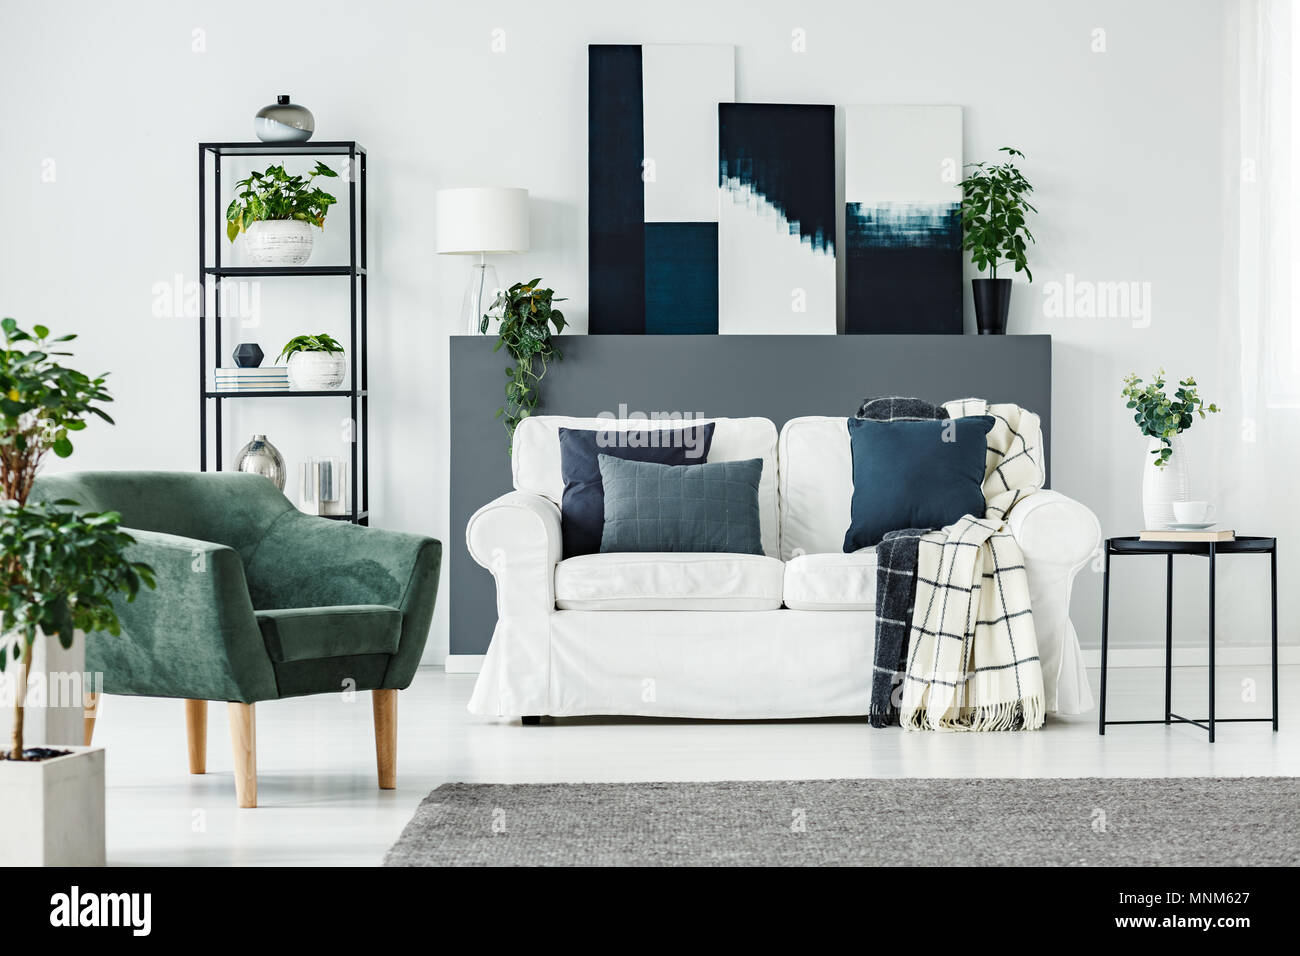 Green armchair, white sofa, plants and grey wall in a modern living ...